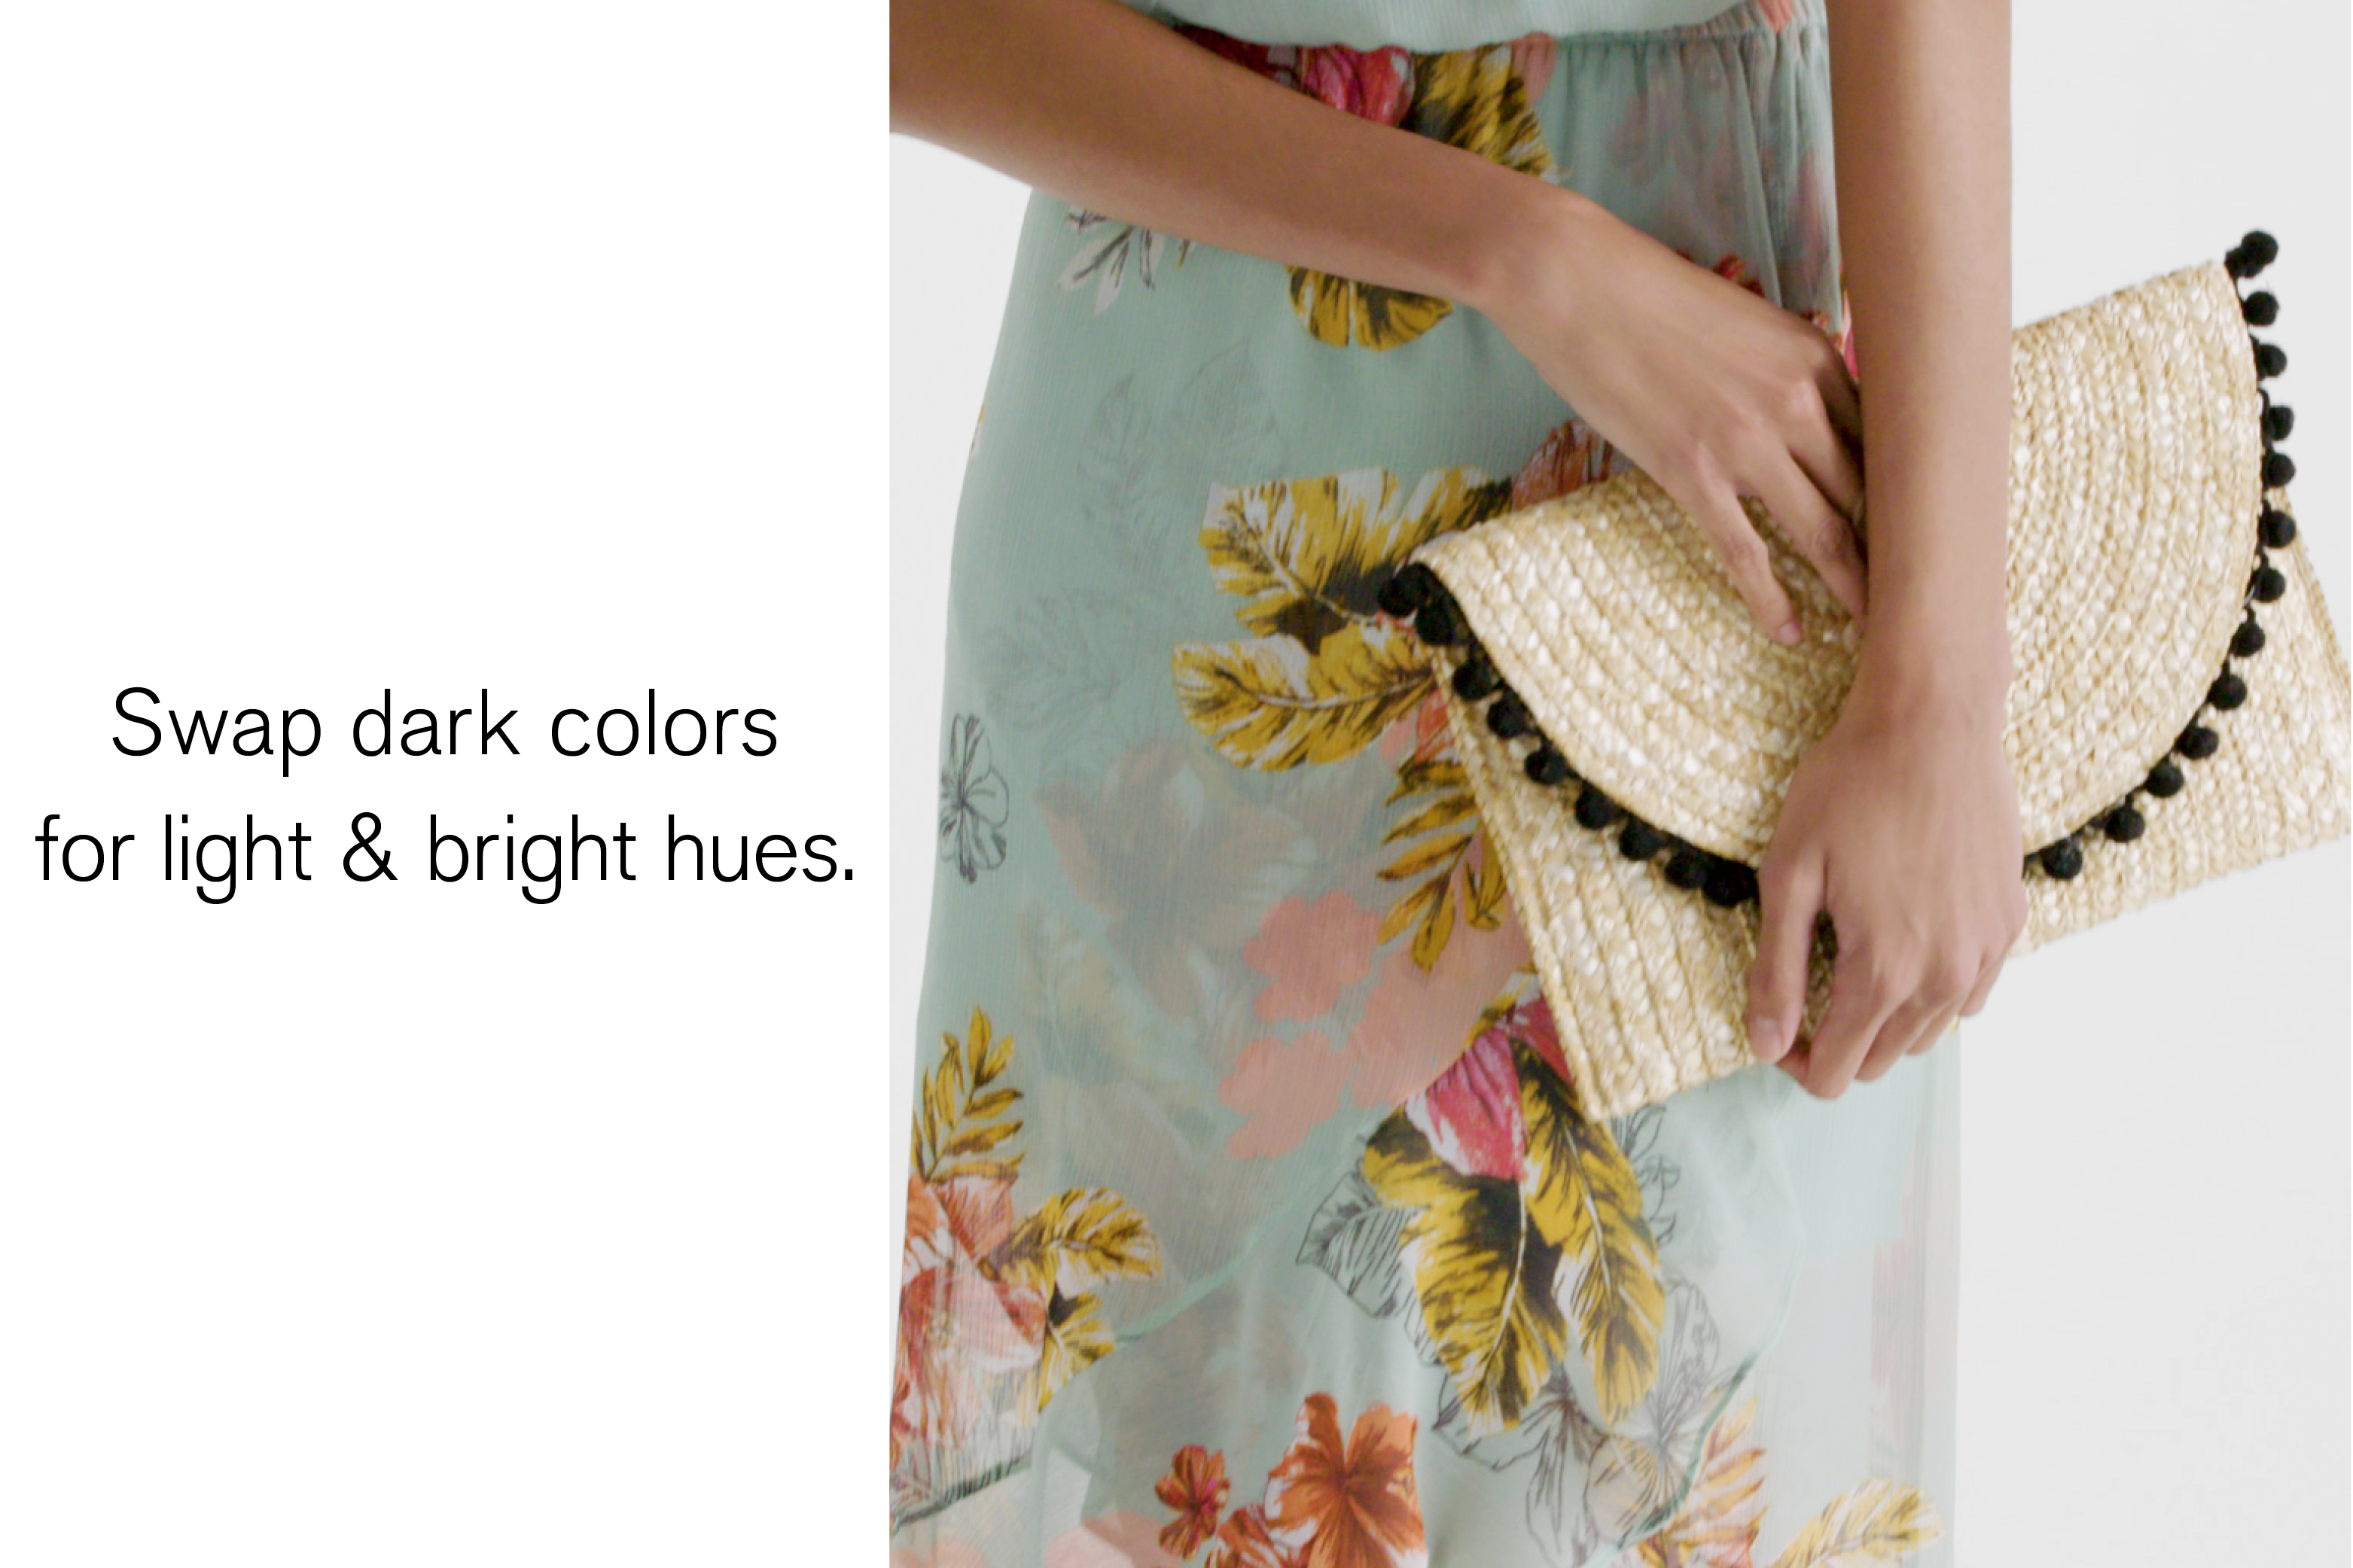 swap-dark-colors-for-light-and-bright-hues